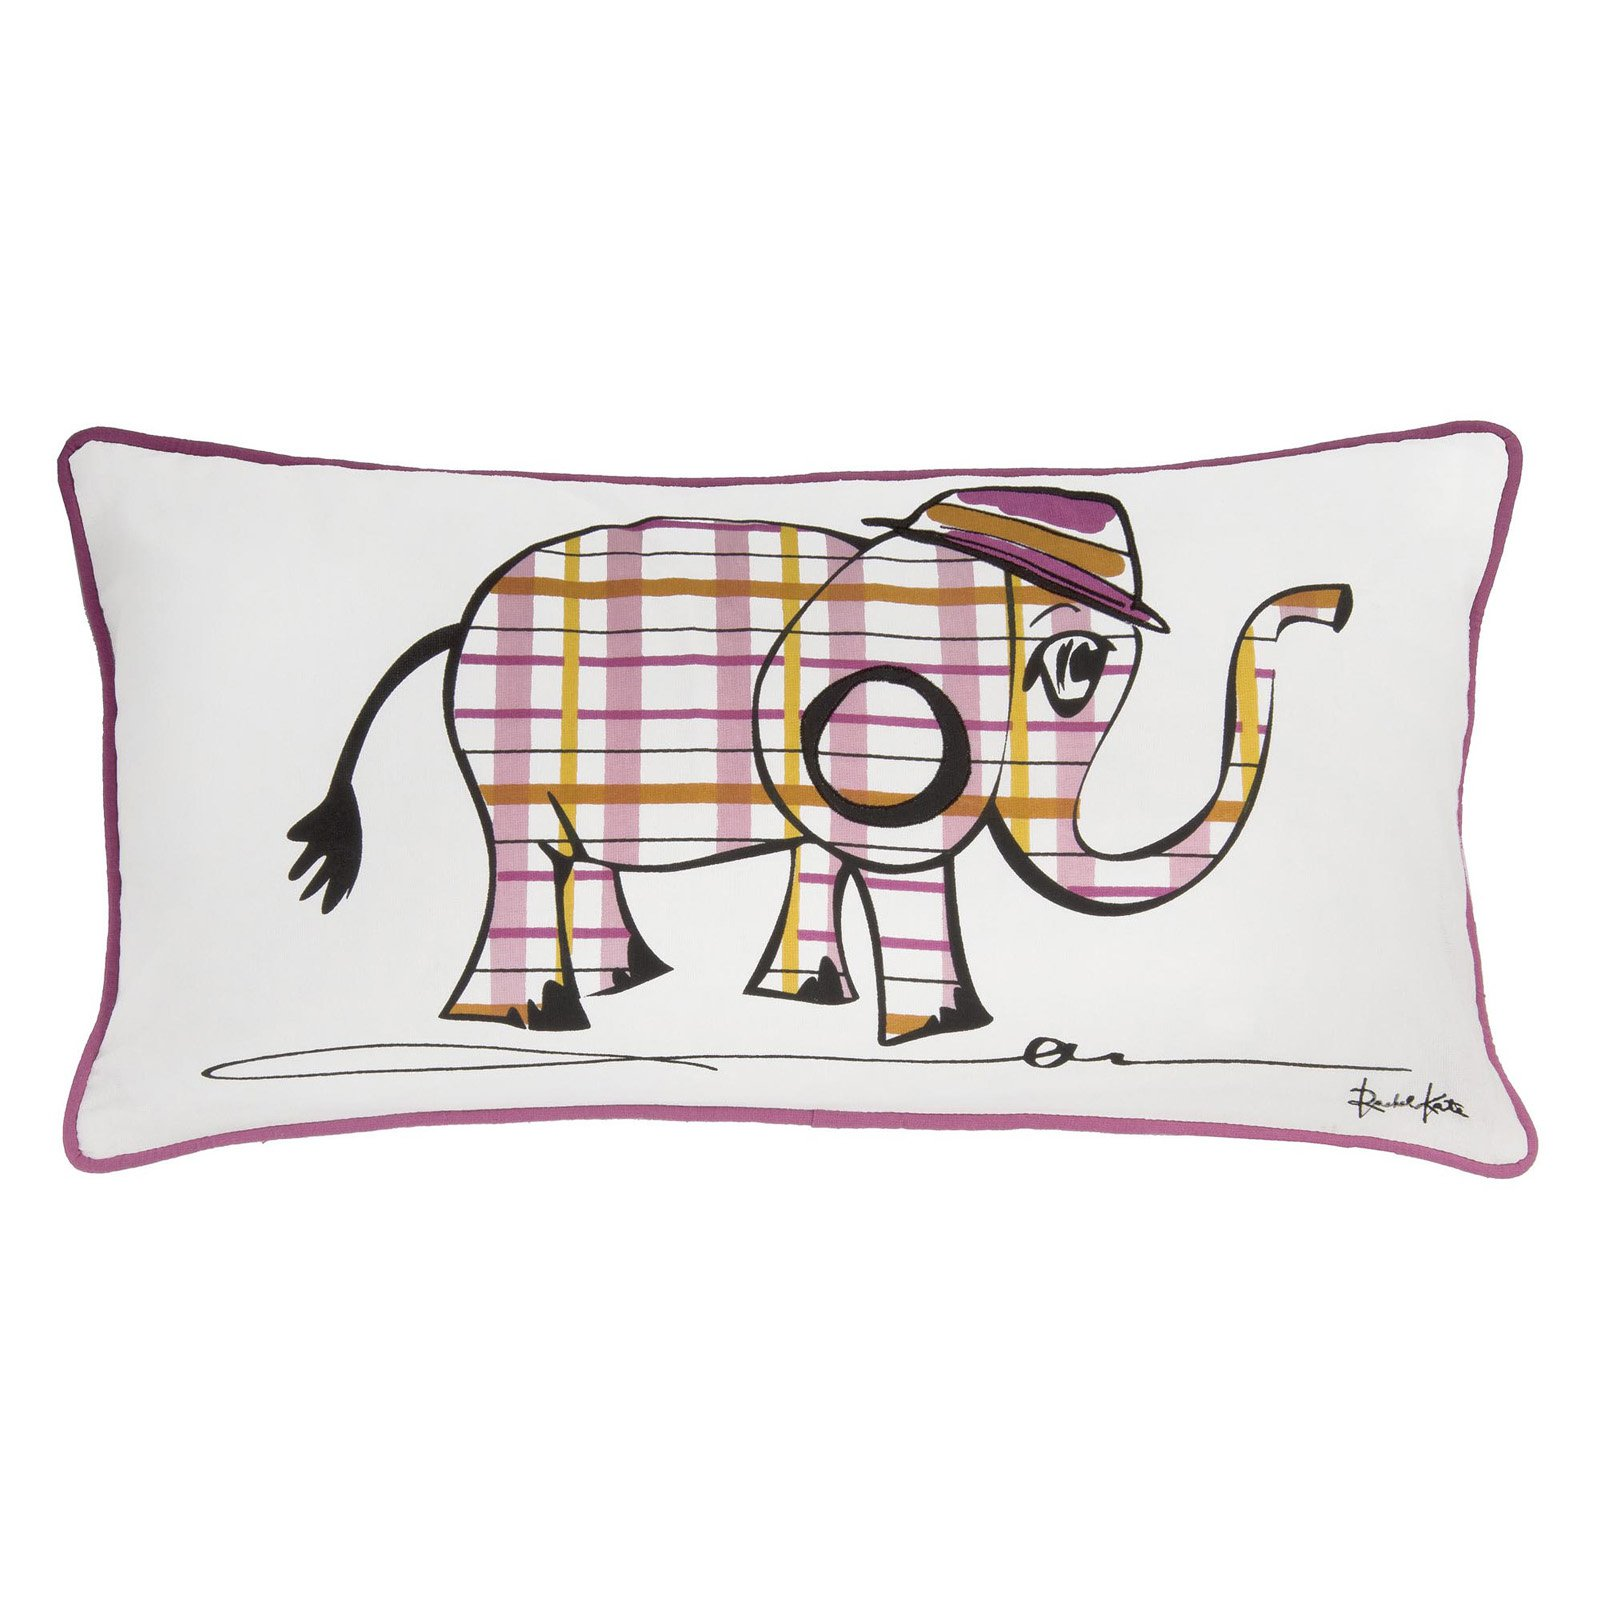 "Rachel Kate by Rizzy Home elephant 11"" x 21"" Cotton decorative filled pillow"